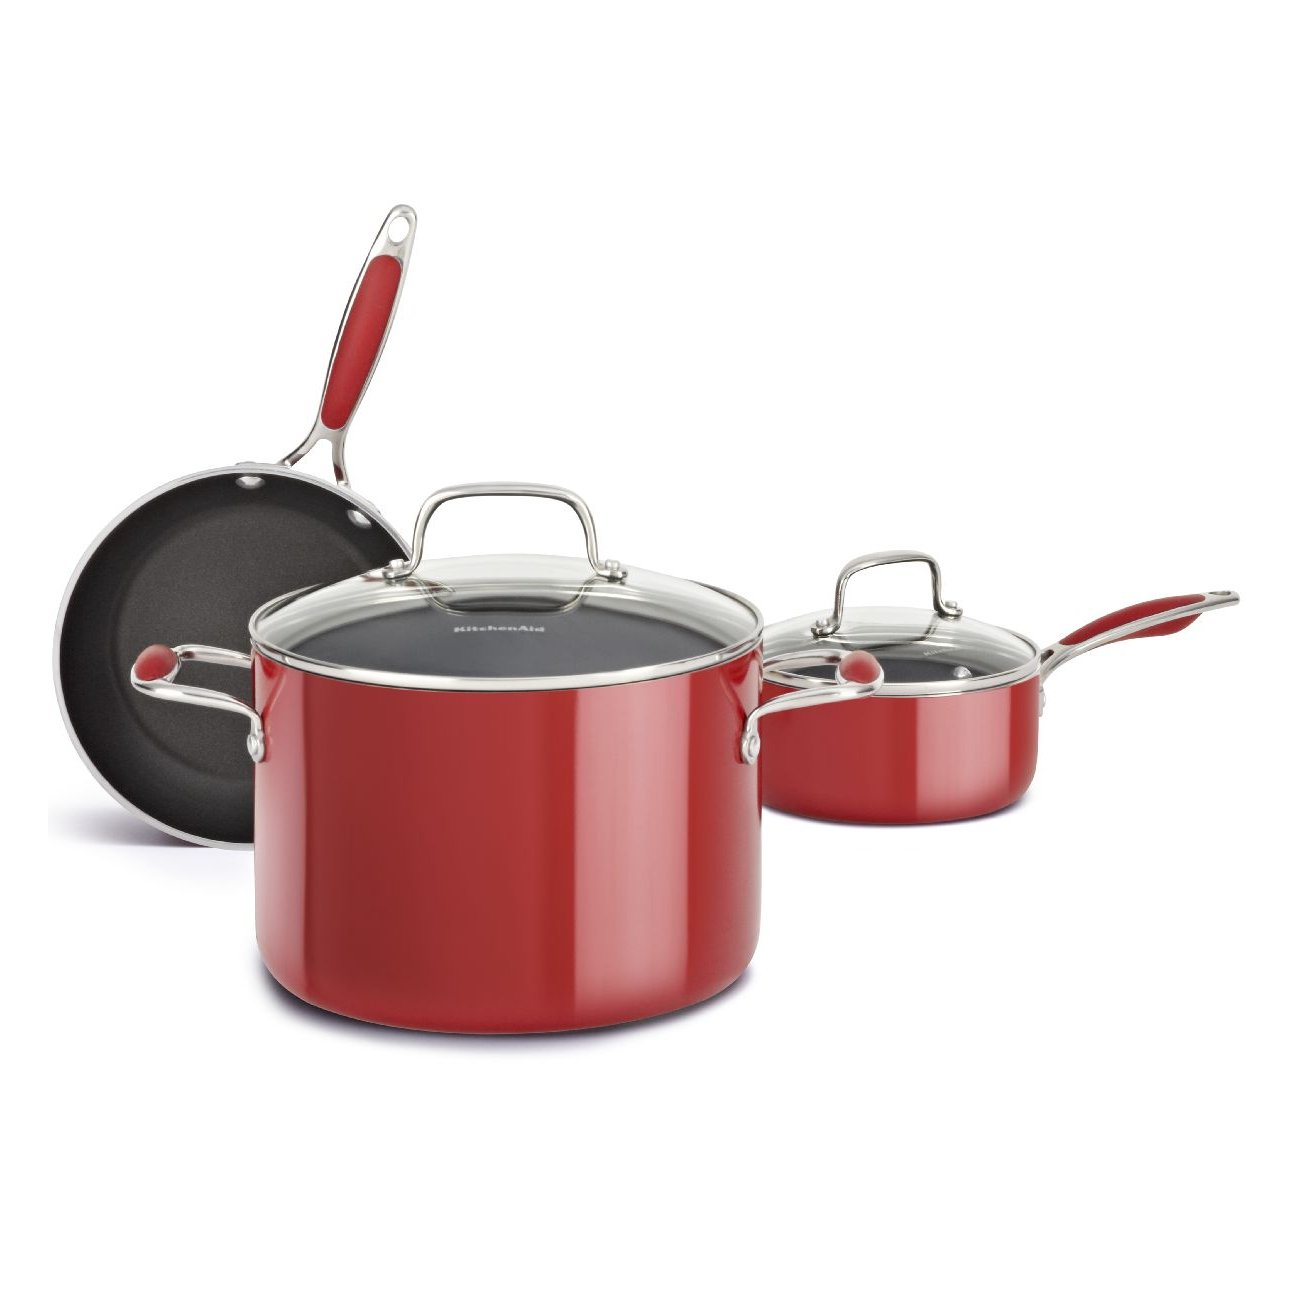 Top 10 Best Induction Cookware (2020 Reviews & Buying Guide) 9